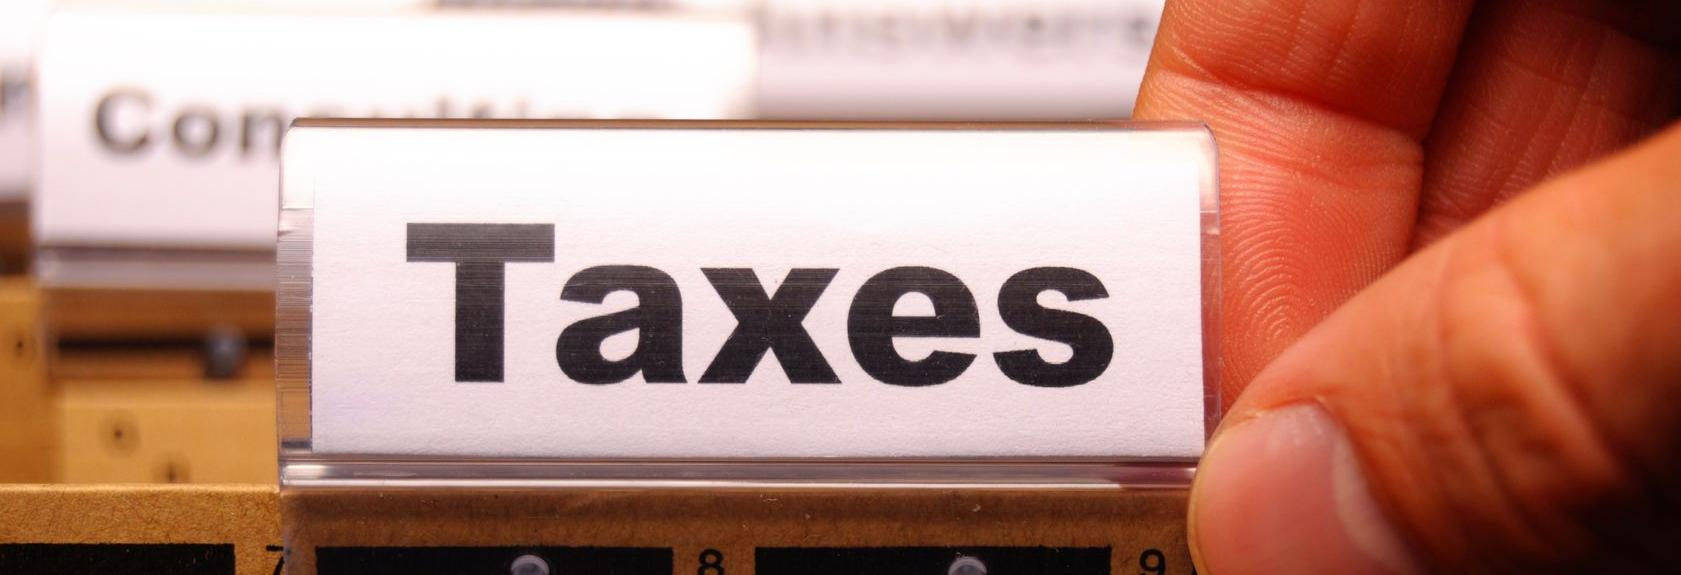 JHFA Services Inc will help you file late and infiledtaxes fro 2018.